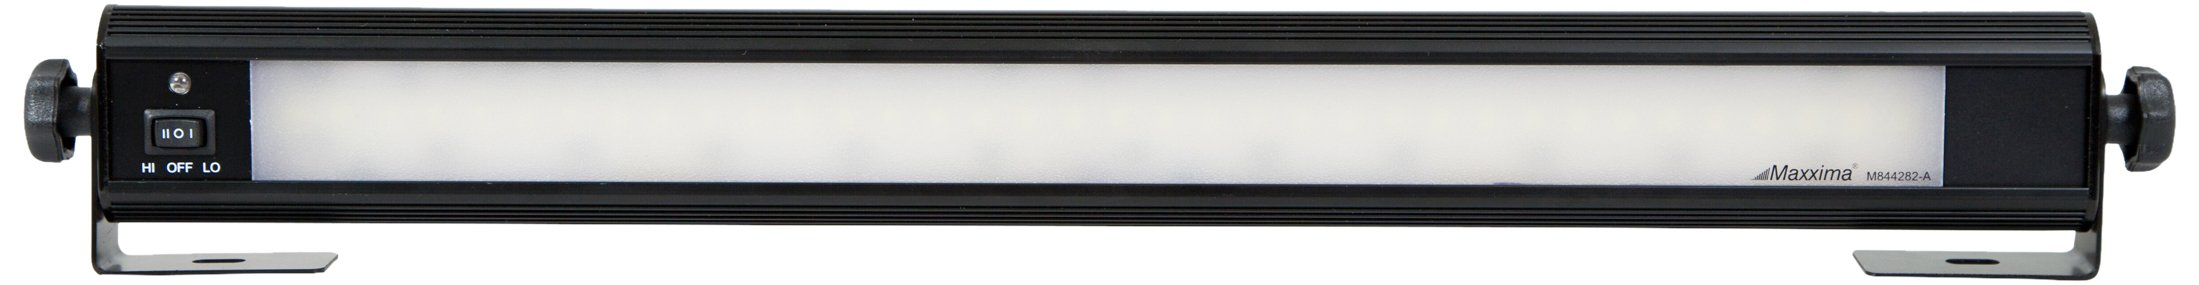 Maxxima M844282-A 36 LED 19.5'' Cargo Light with Illuminated On/Off Switch 550 Lumens